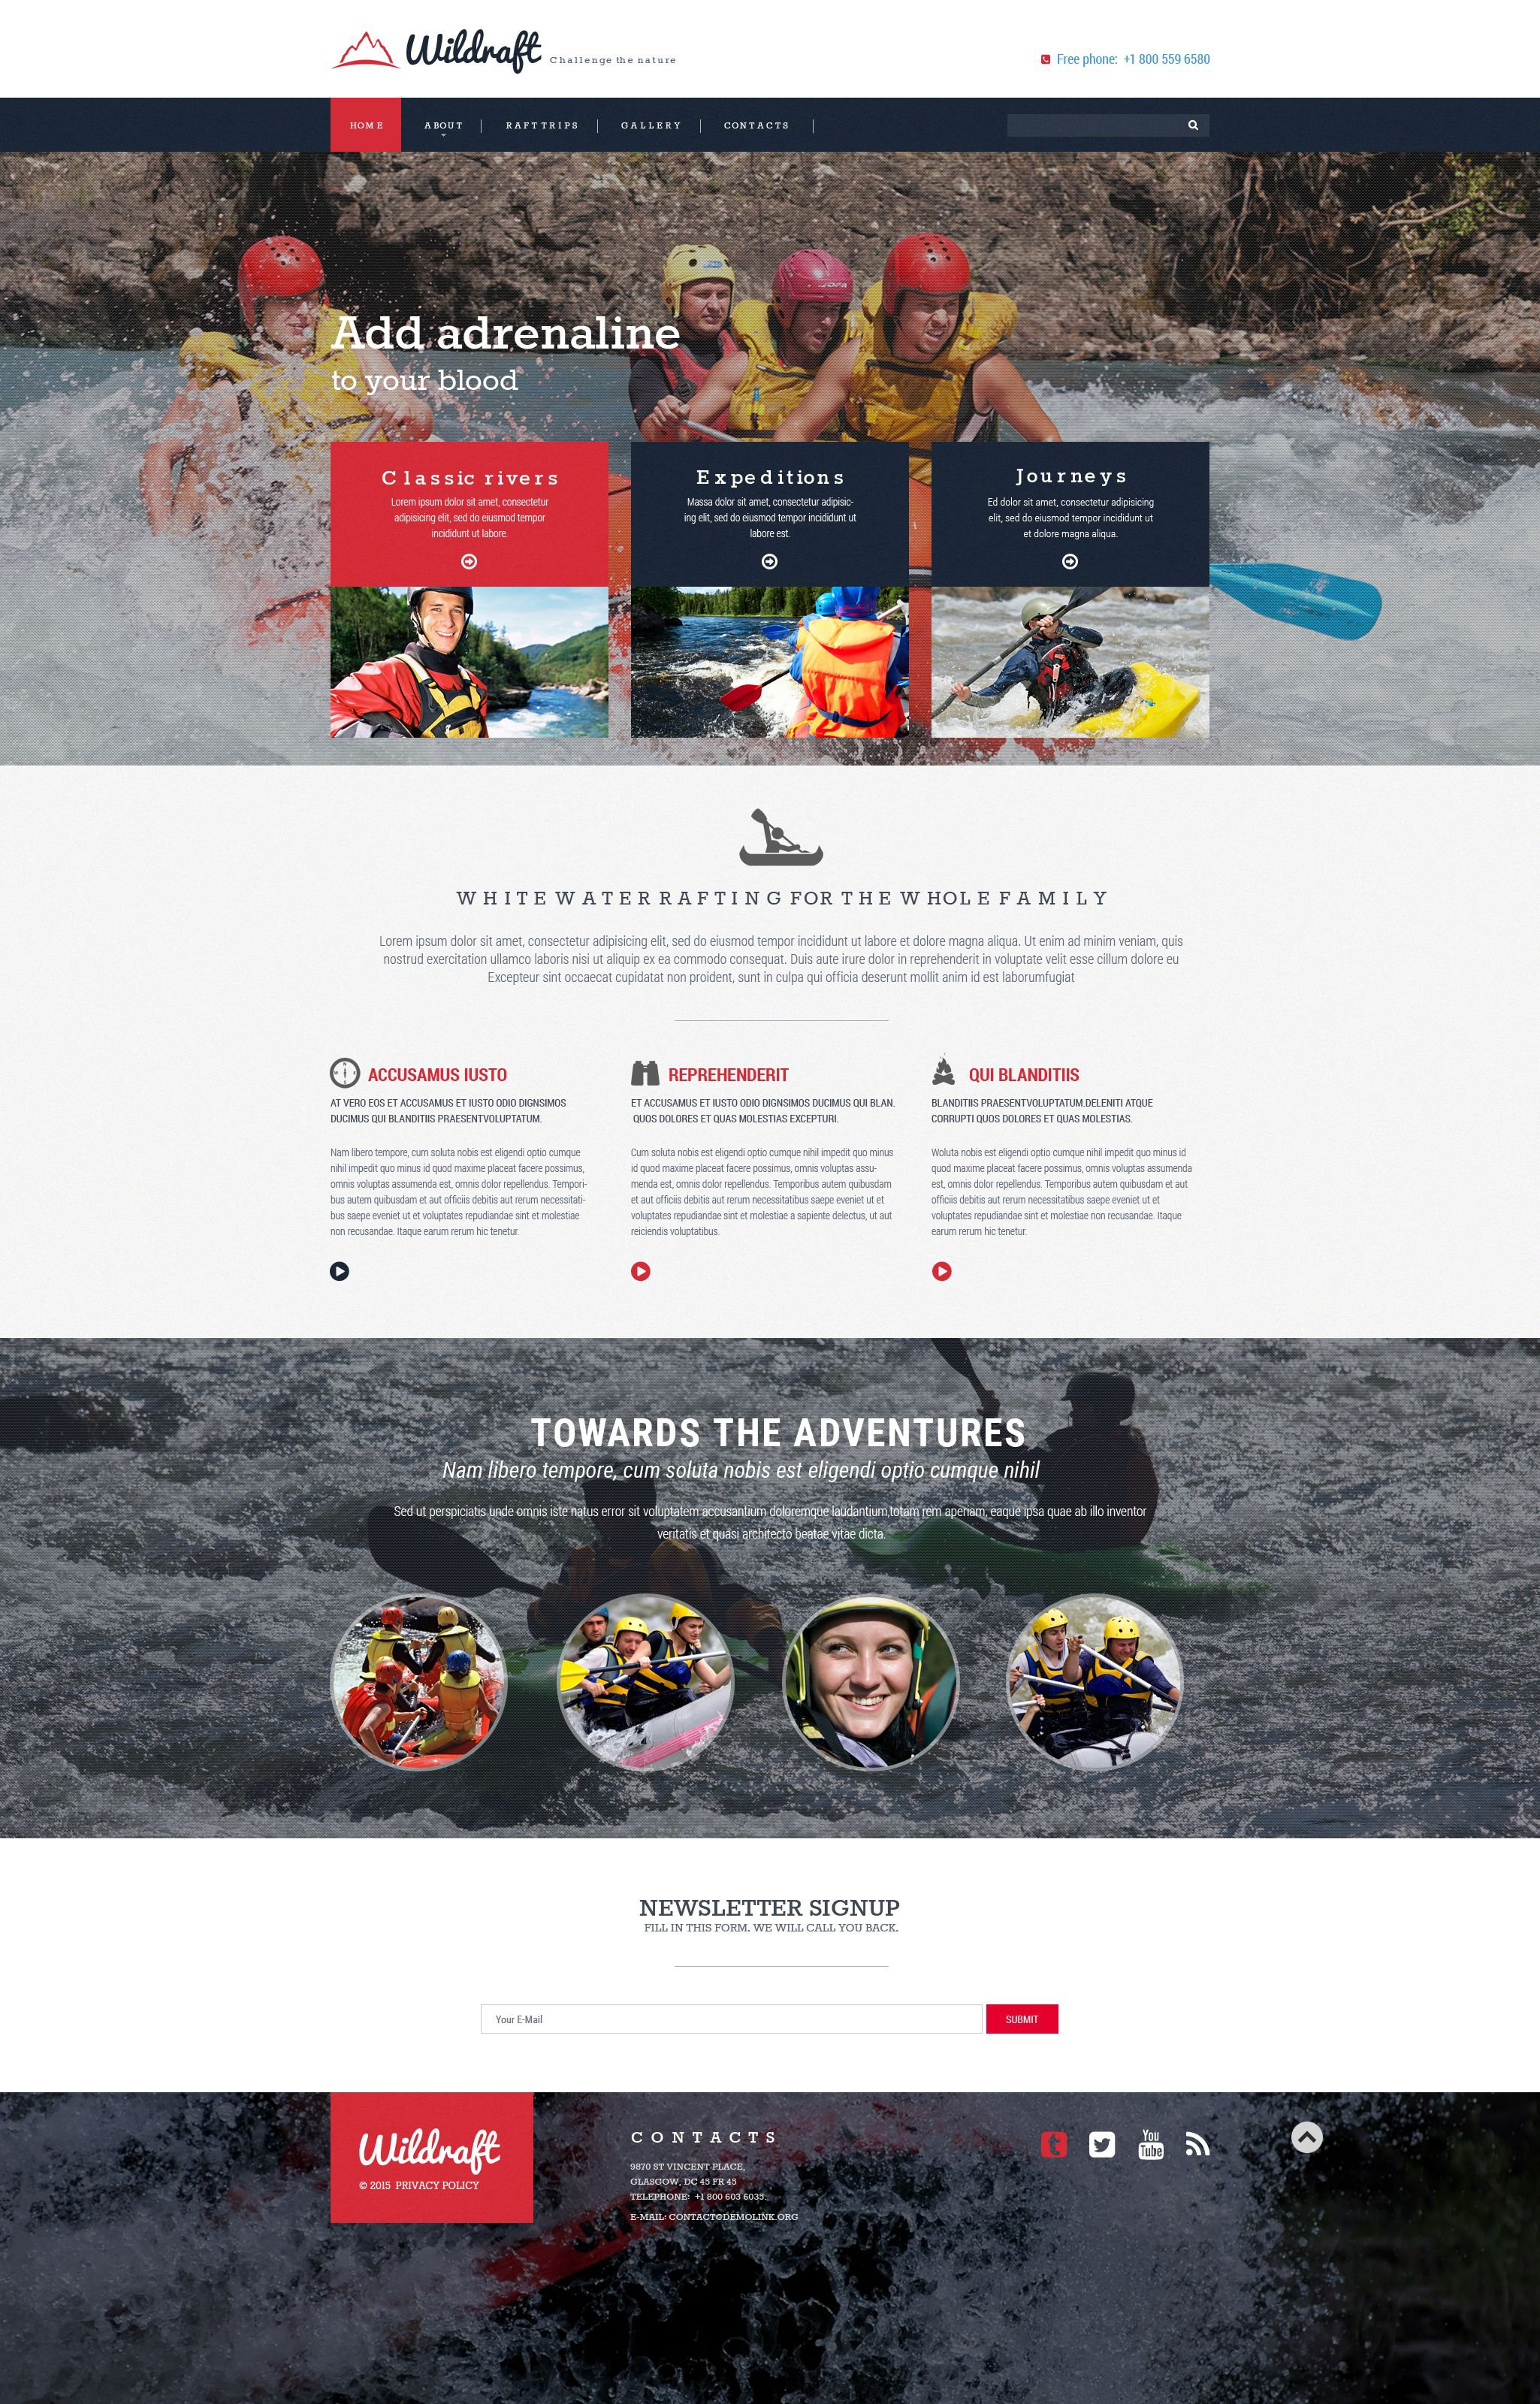 The Wildraft Rafting Sport Bootstrap Design 54542, one of the best website templates of its kind (sport, most popular), also known as Wildraft rafting sport website template, boat website template, extreme website template, adventure website template, canoe website template, kayak website template, water website template, paddle and related with Wildraft rafting sport, boat, extreme, adventure, canoe, kayak, water, paddle, etc.